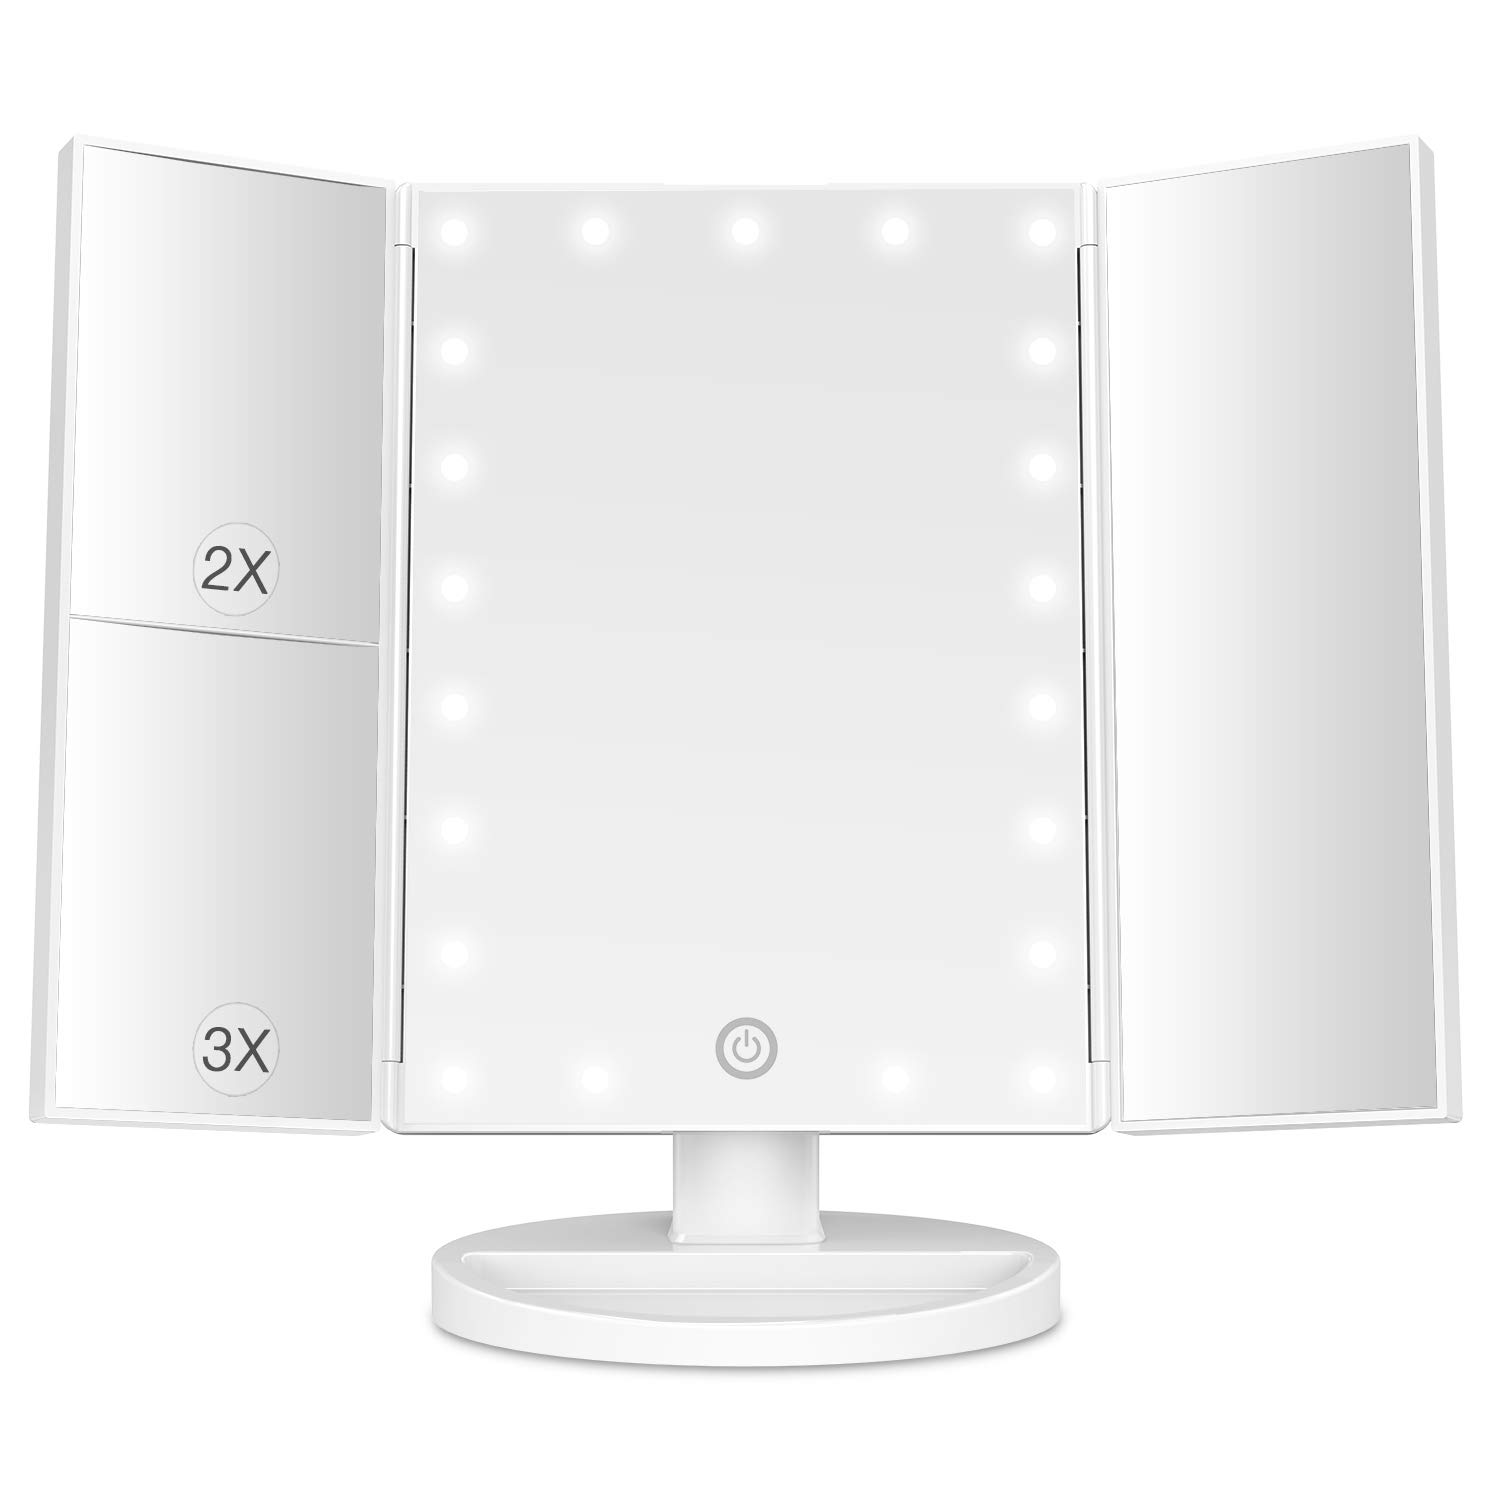 BESTOPE Makeup Mirror with Lights 21 Led Light Up Mirror with 2X/3X Magnification Vanity Mirror with Lights Touch Screen 180 Degree Rotation Dual Power Supply : Beauty